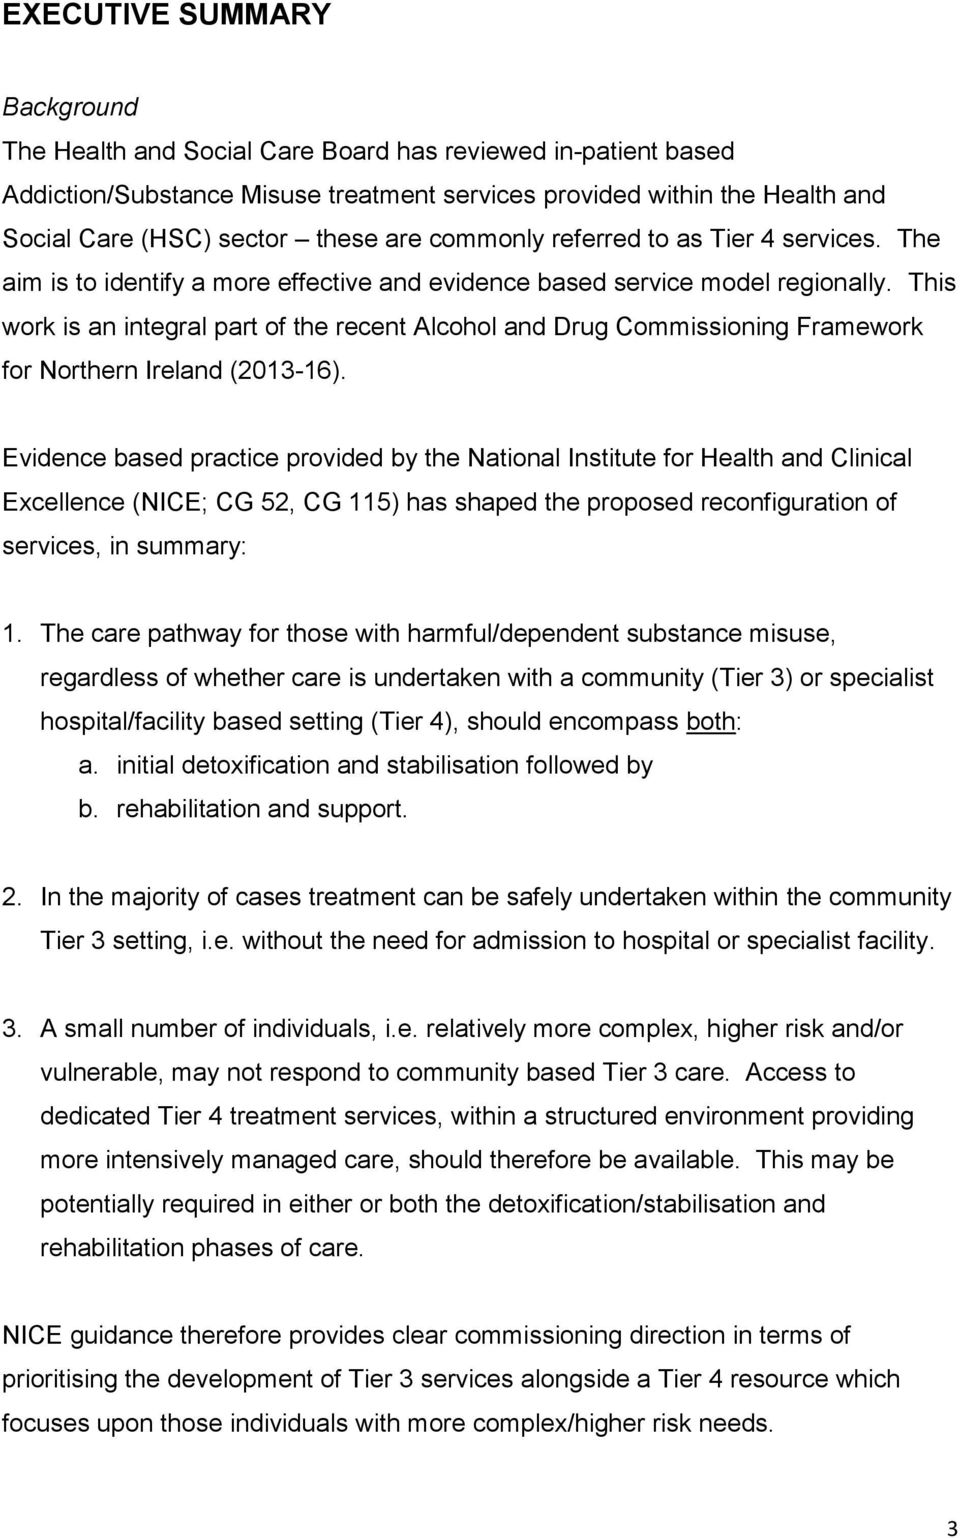 This work is an integral part of the recent Alcohol and Drug Commissioning Framework for Northern Ireland (2013-16).